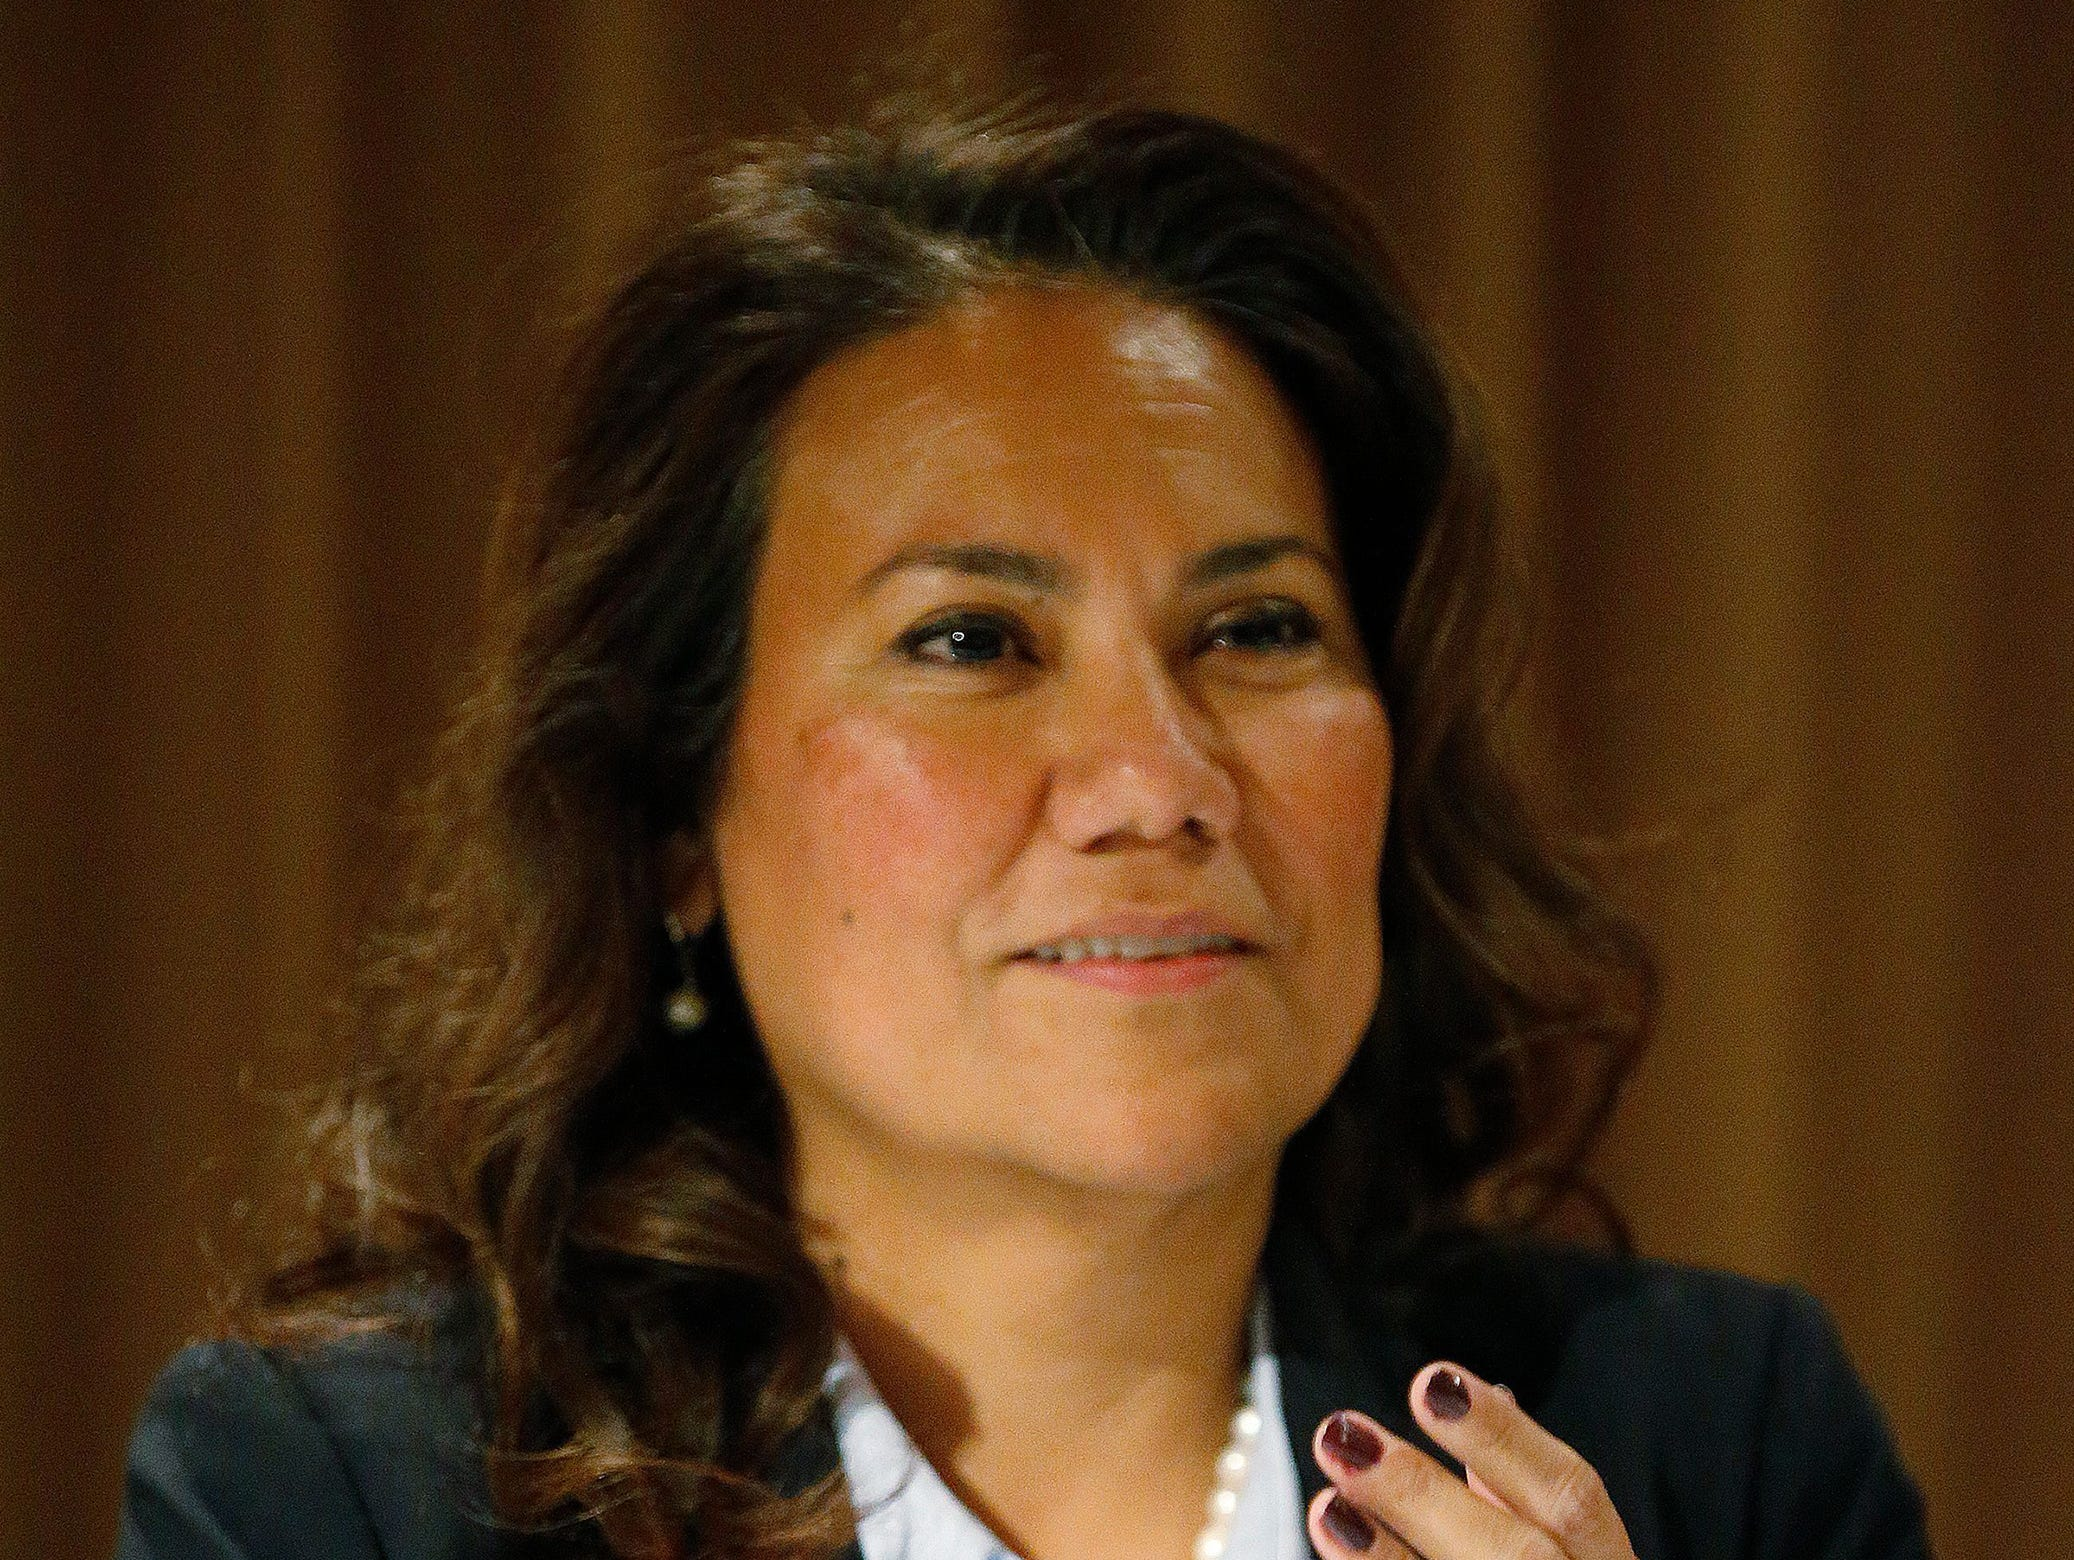 Former County Judge Veronica Escobar attends acandidates forum during her run for congress.